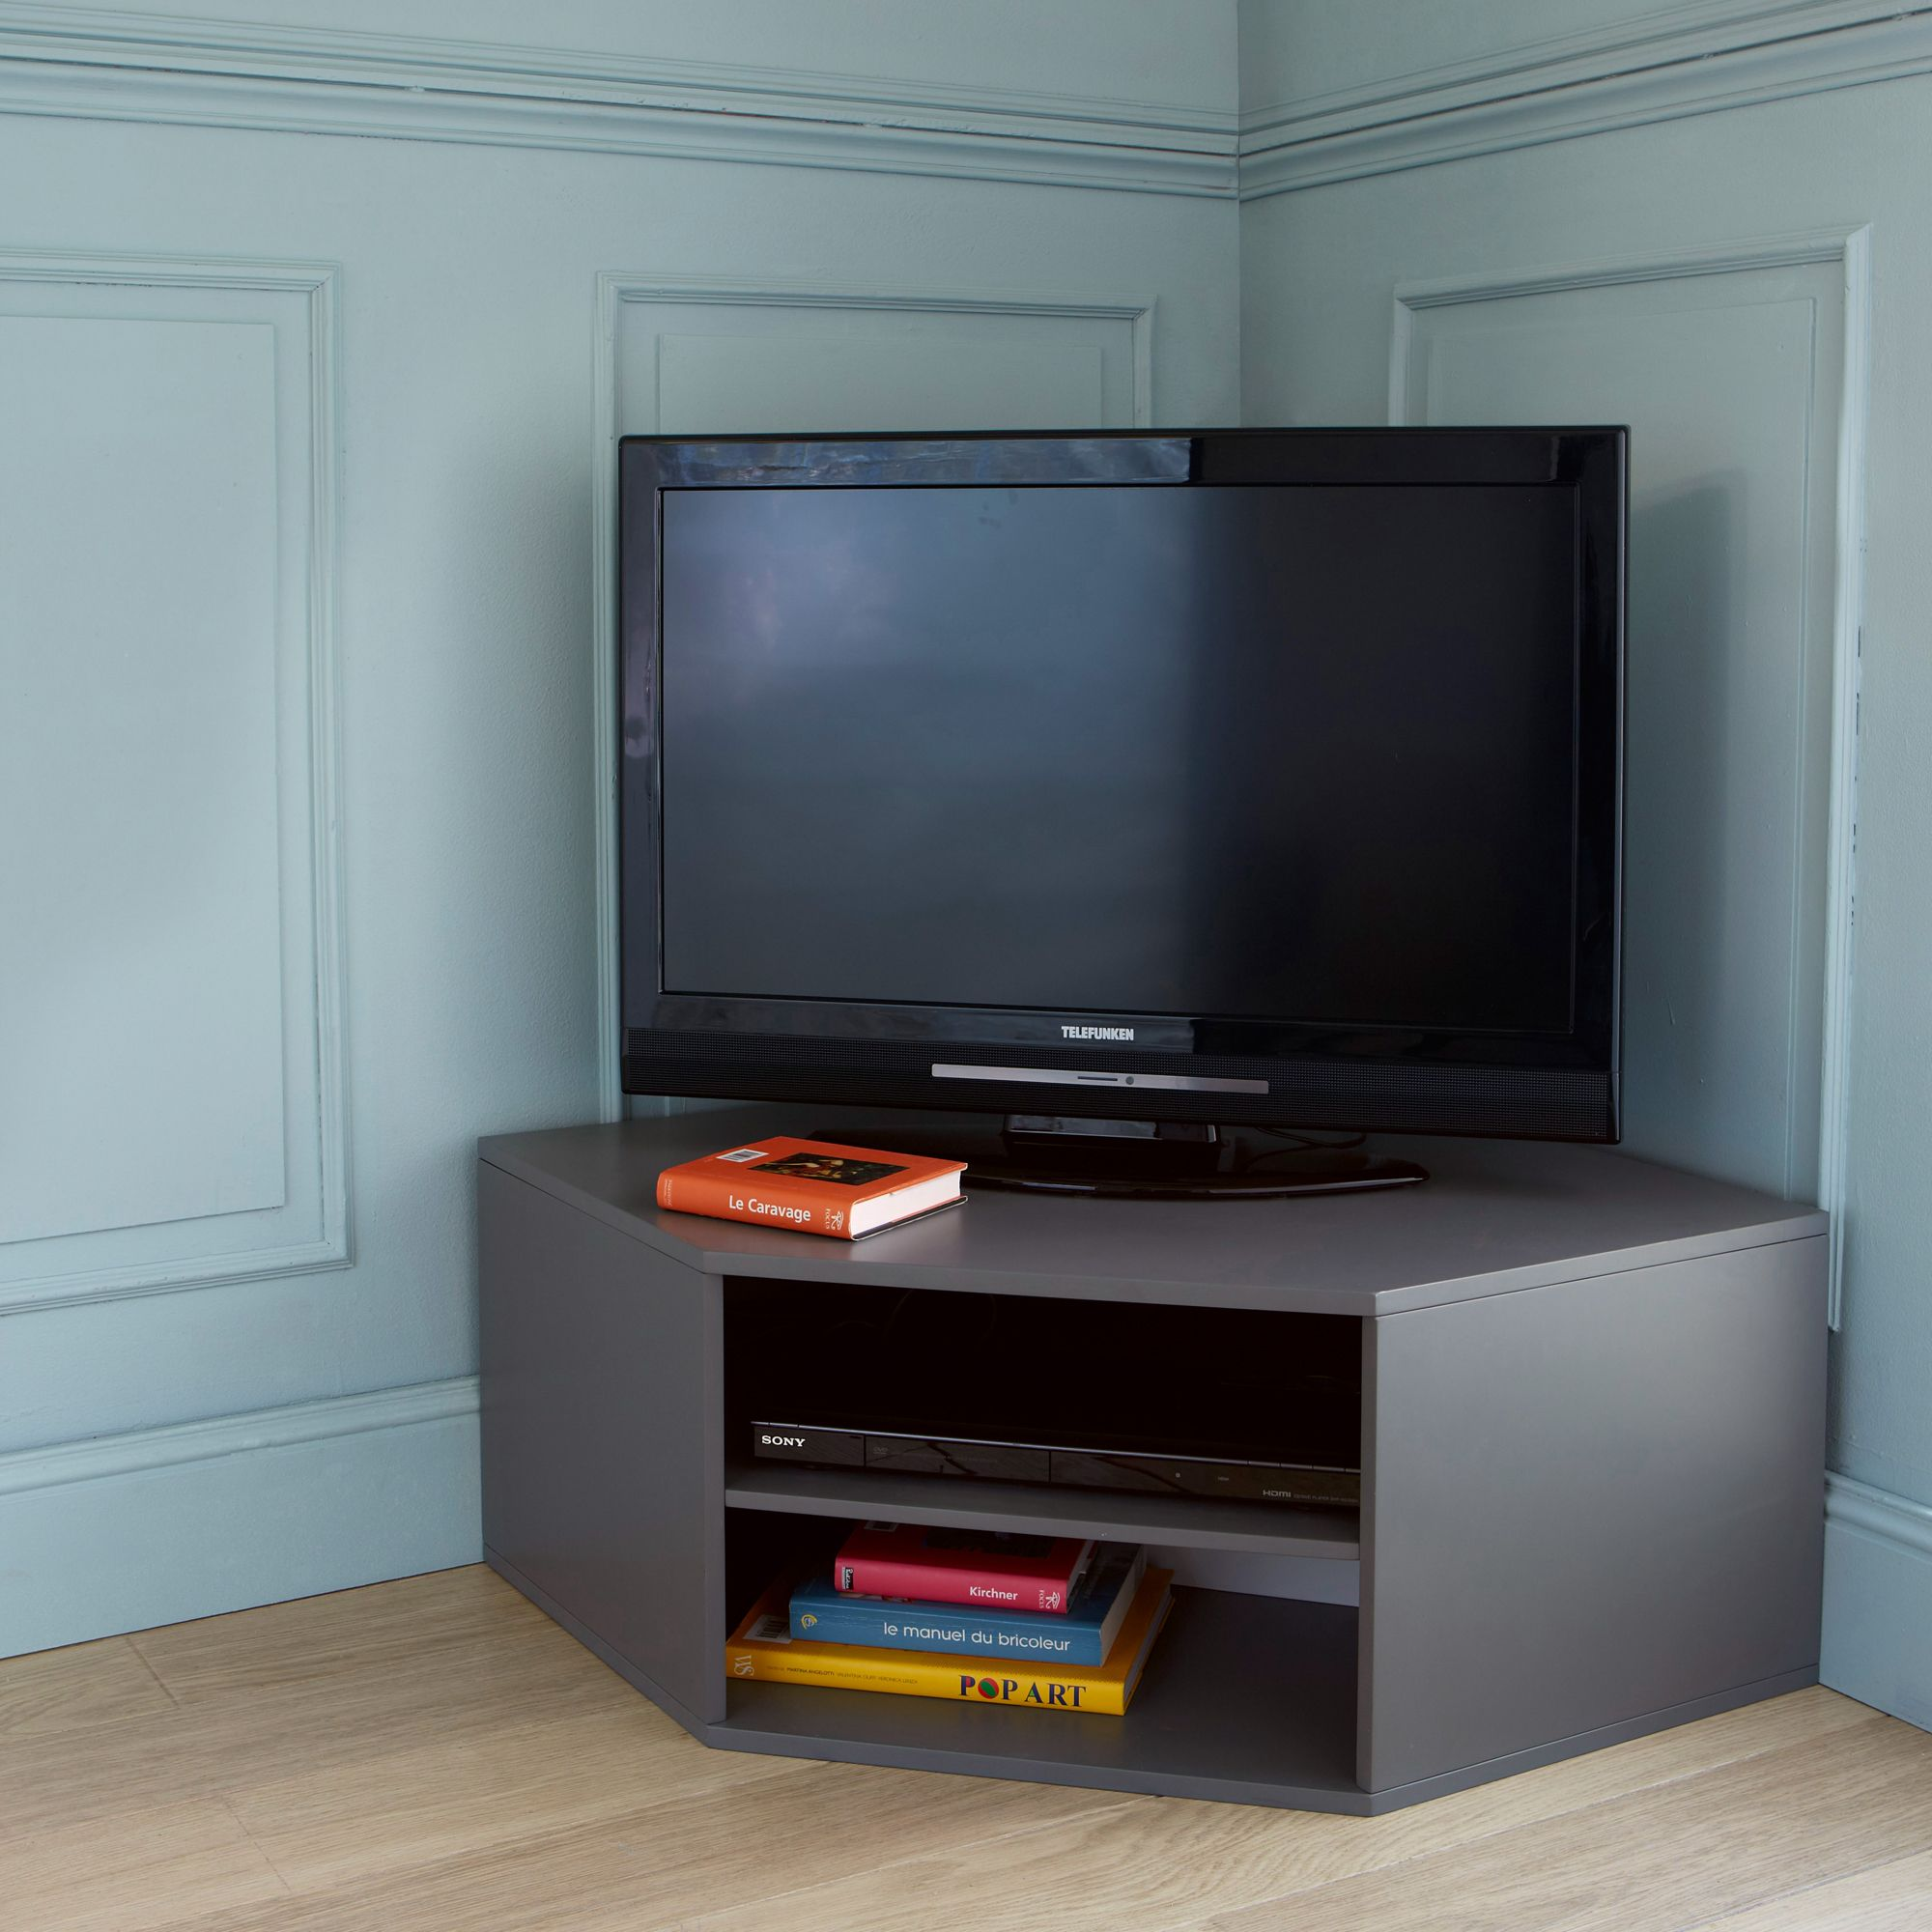 Meuble Tv D Angle Kolorcaz 3 Suisses Funitures Pinterest  # Tele En Angle Deco Contemporaine